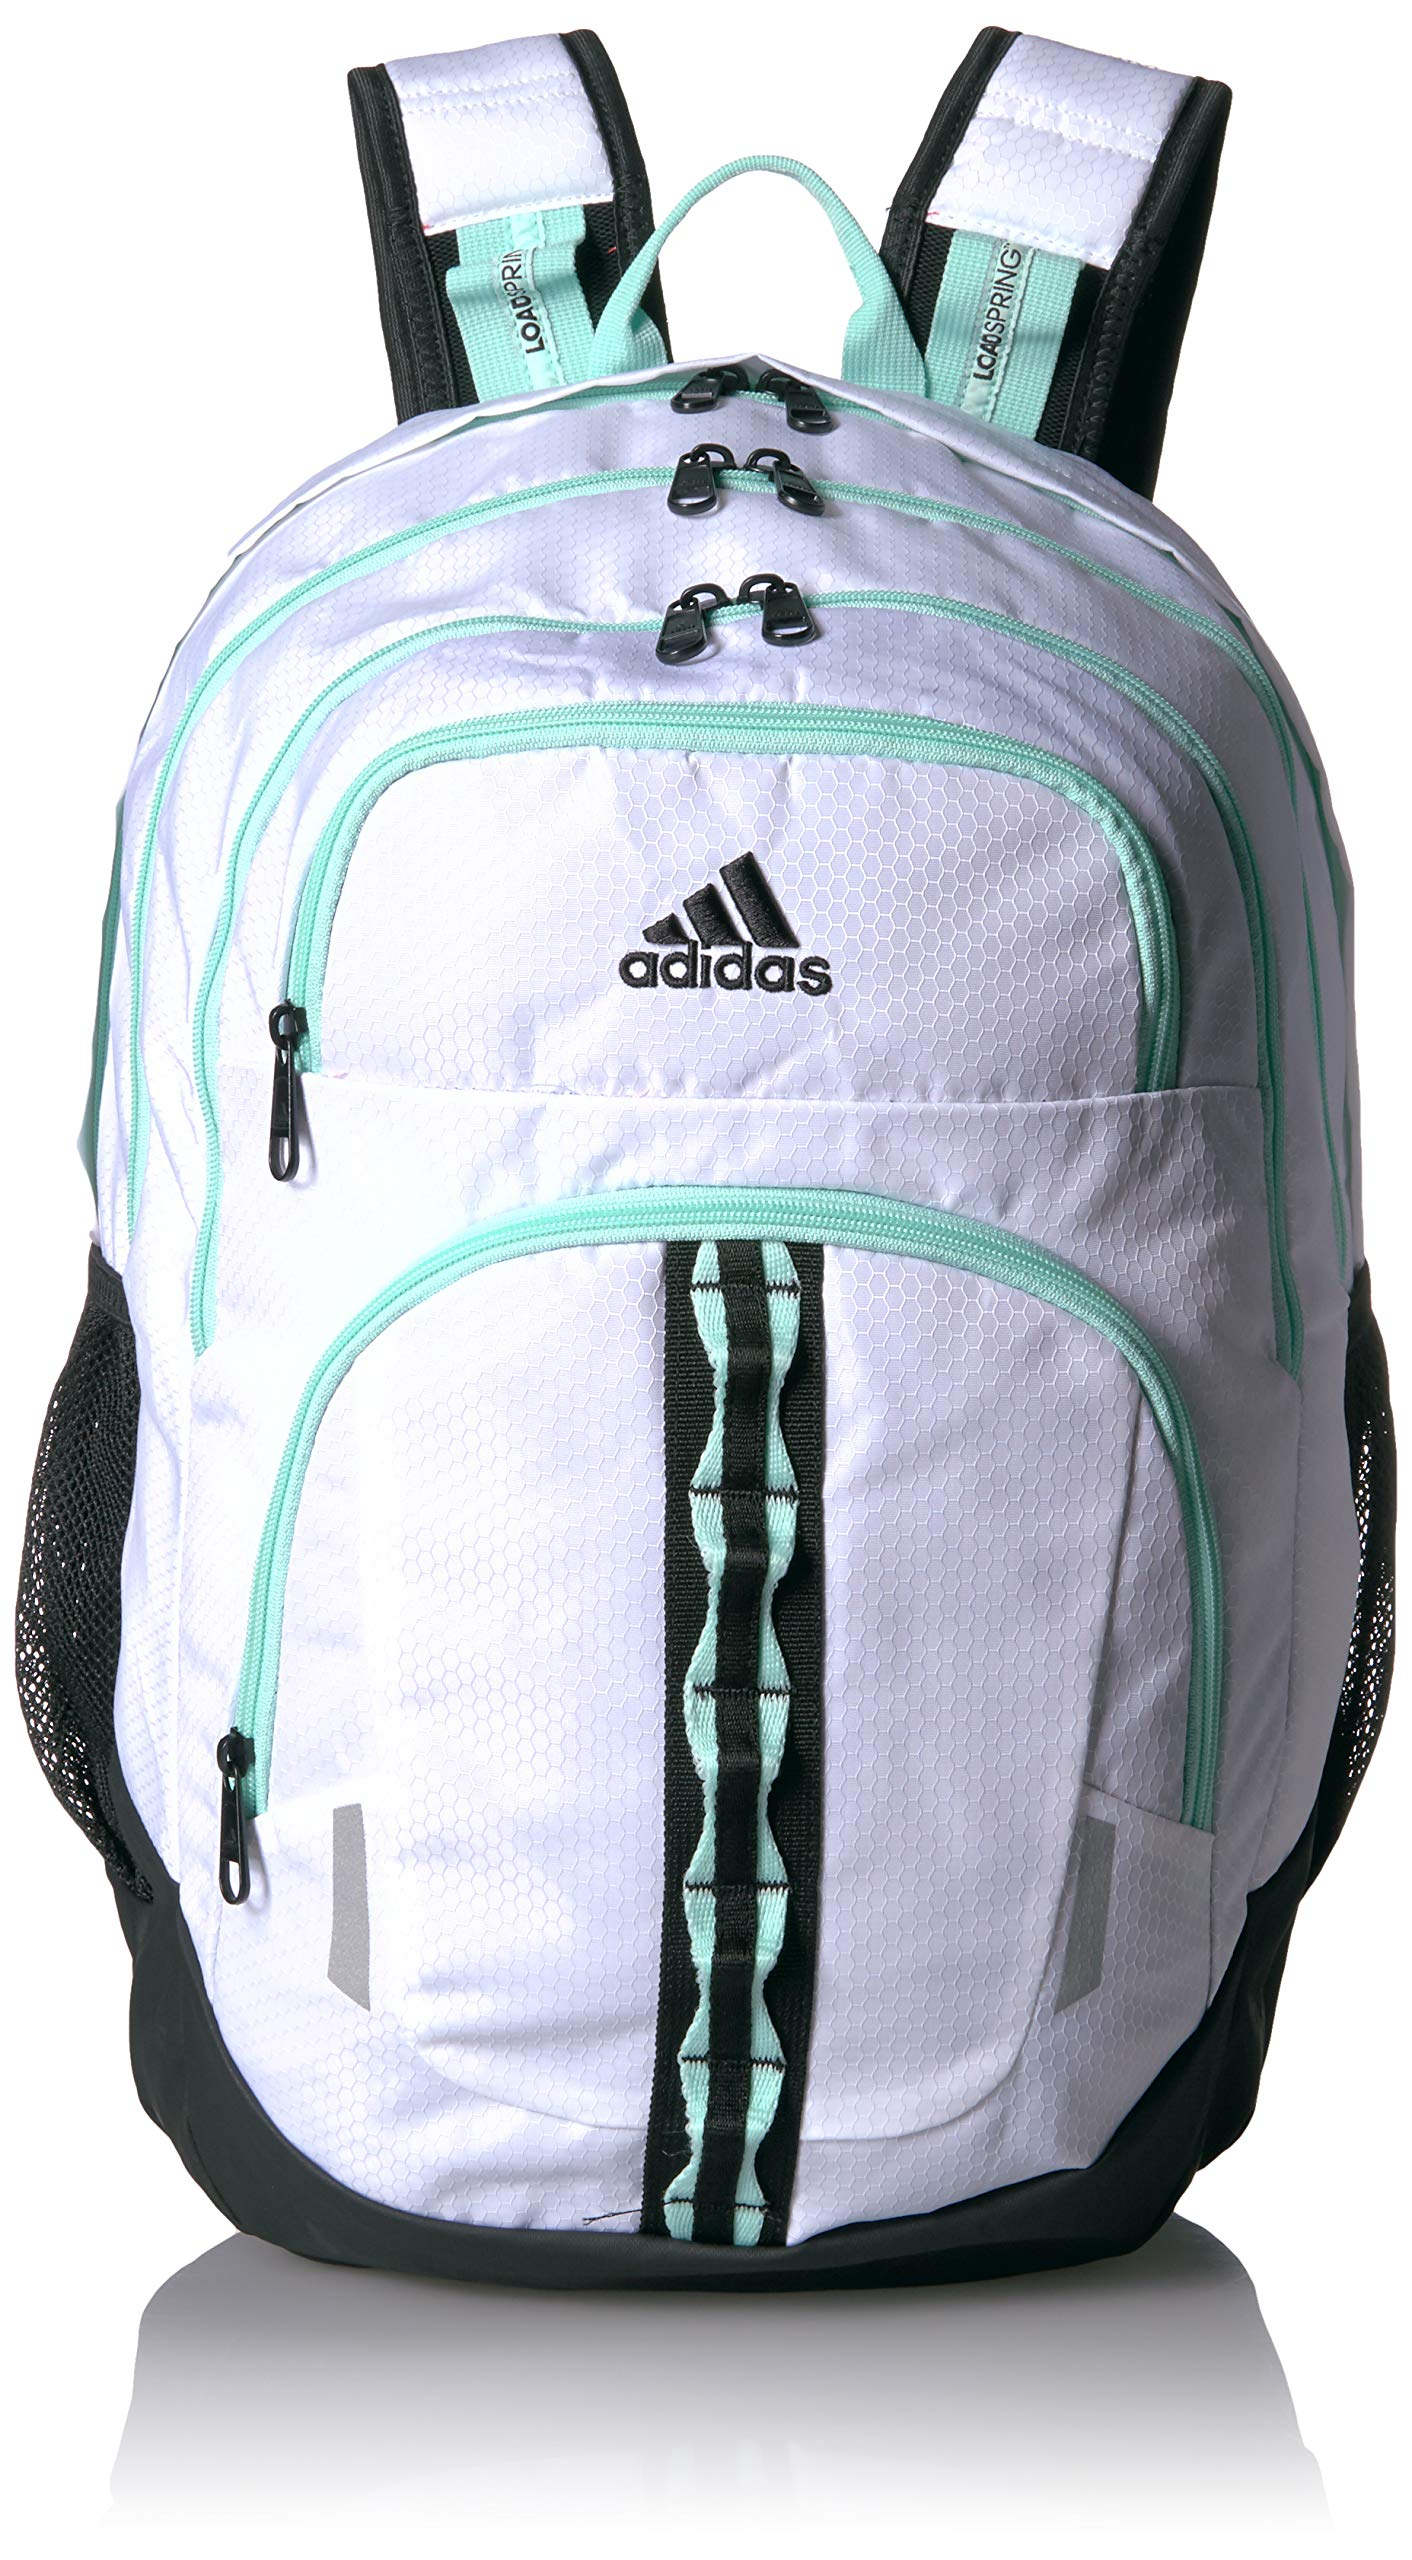 adidas Prime Backpack, White/Clear Mint/Black, One Size